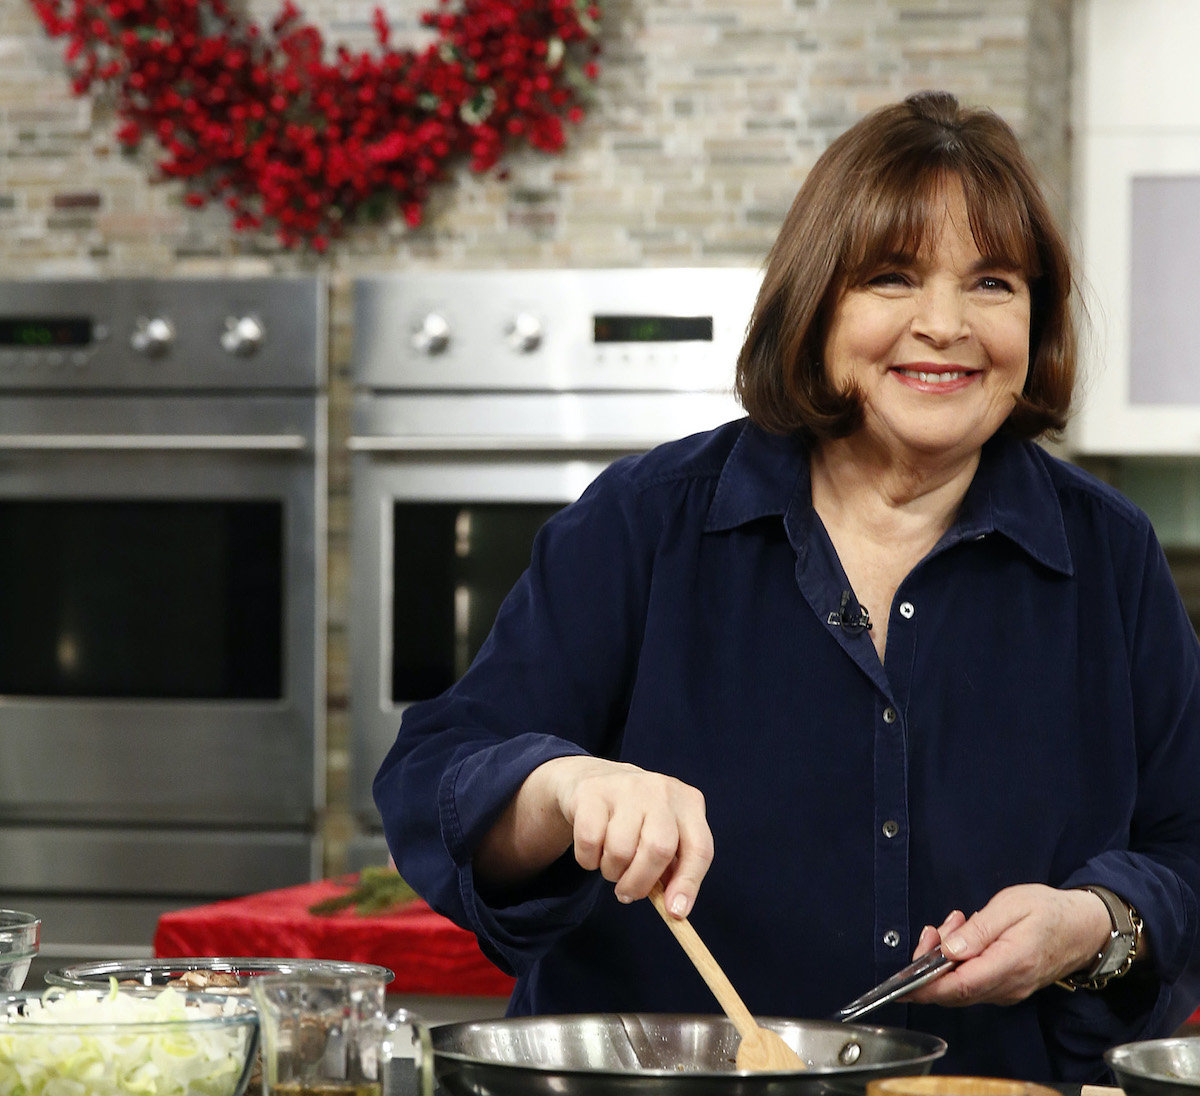 Ina Garten smiles as she stirs food with a wooden spoon on the Today show